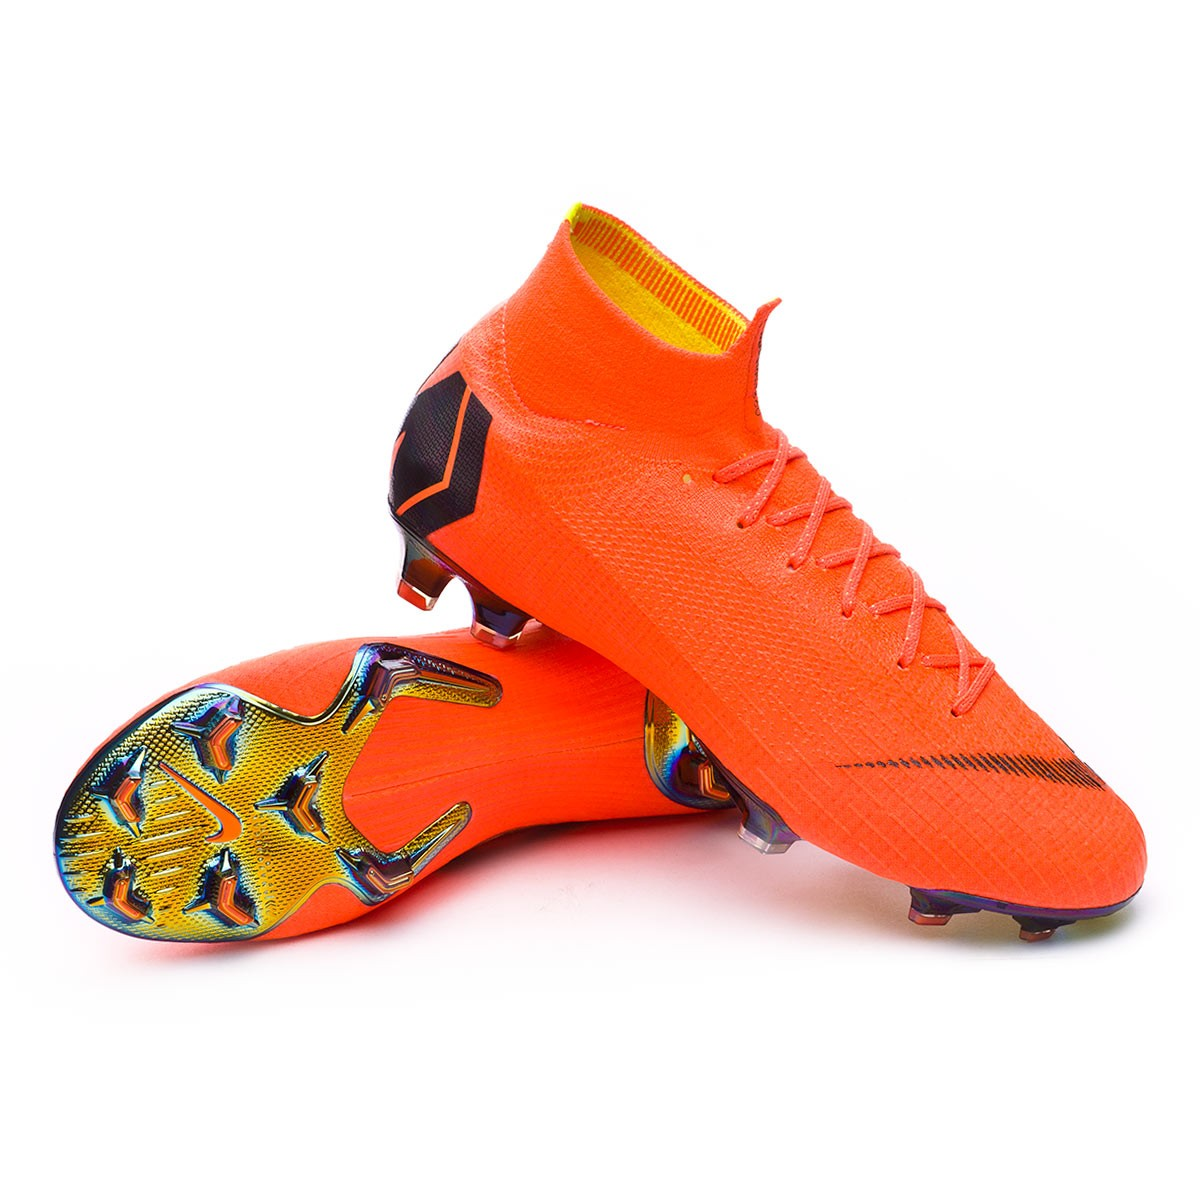 Boot Nike Mercurial Superfly VI Elite FG Total orange-Black-Volt ... b693e5b1d